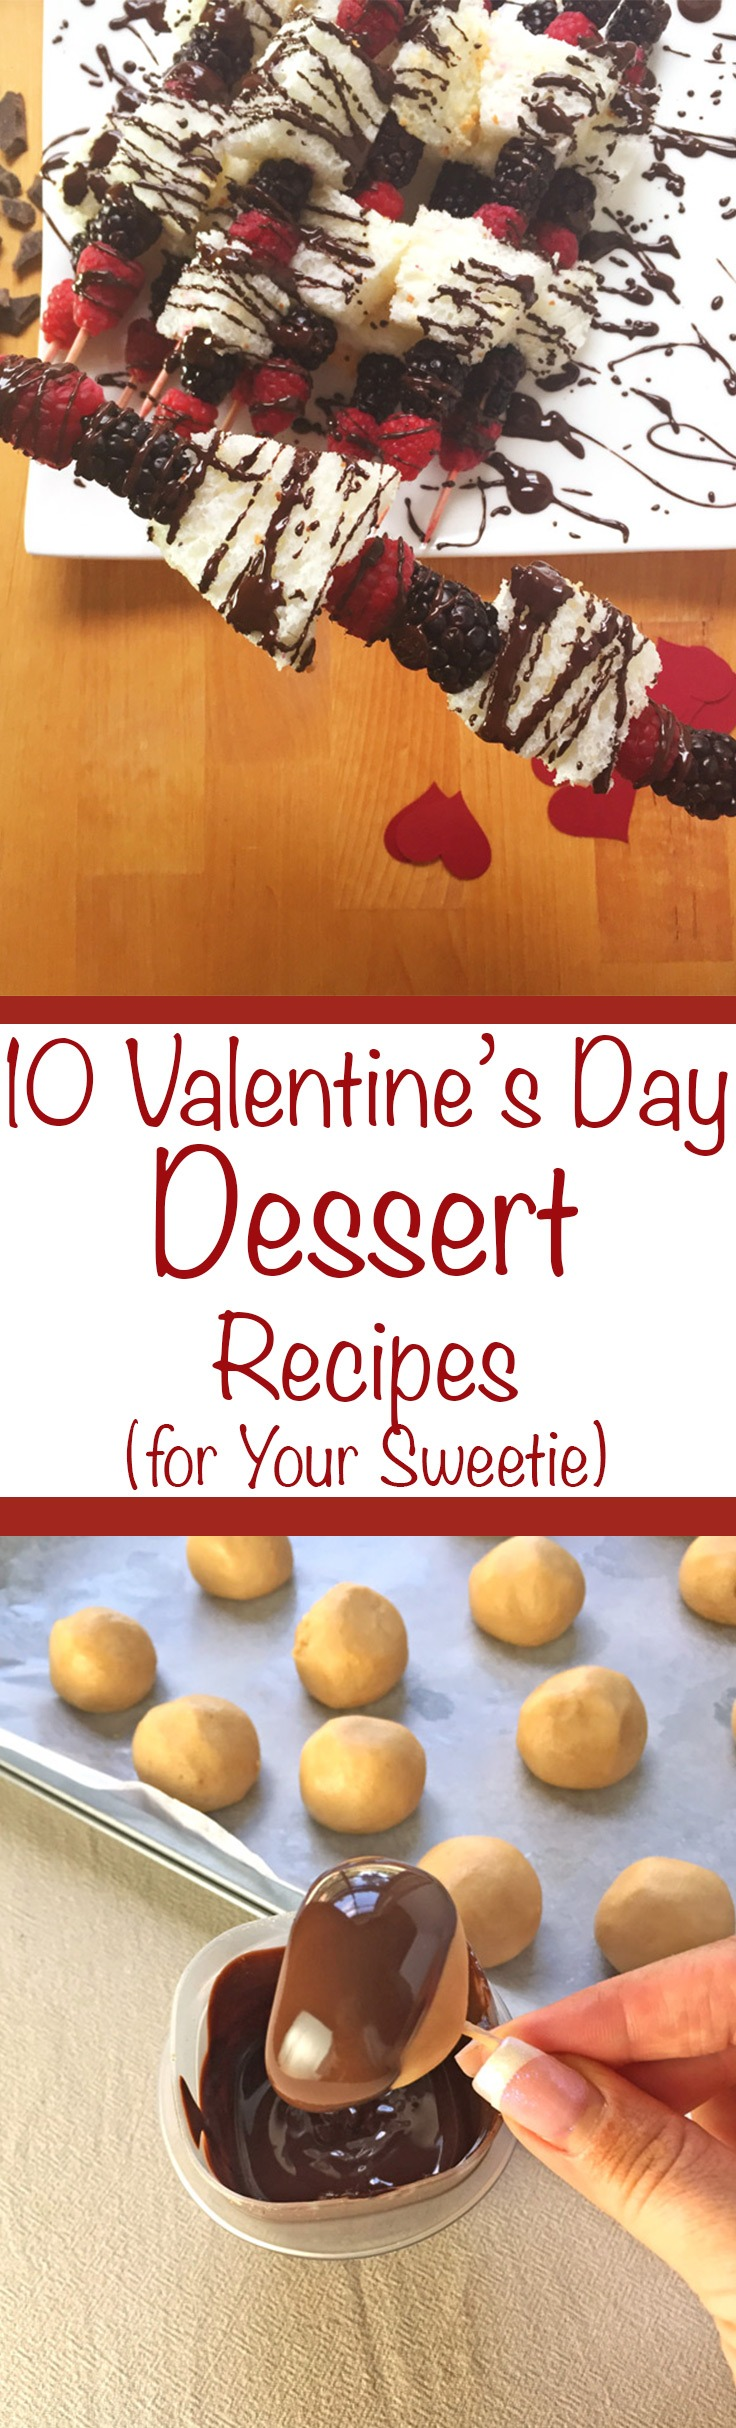 10 Valentine's Day Dessert Recipes to Impress Your Sweetie. In our household, we celebrate Valentine's Day not with jewelry, flowers or cards but with chocolate, dessert and other Valentine's Day Recipes! Click through for a list of 10 Valentine's Day Dessert Recipes you can make for your sweetheart! | SeasonlyCreations.com | @SeasonlyBlog